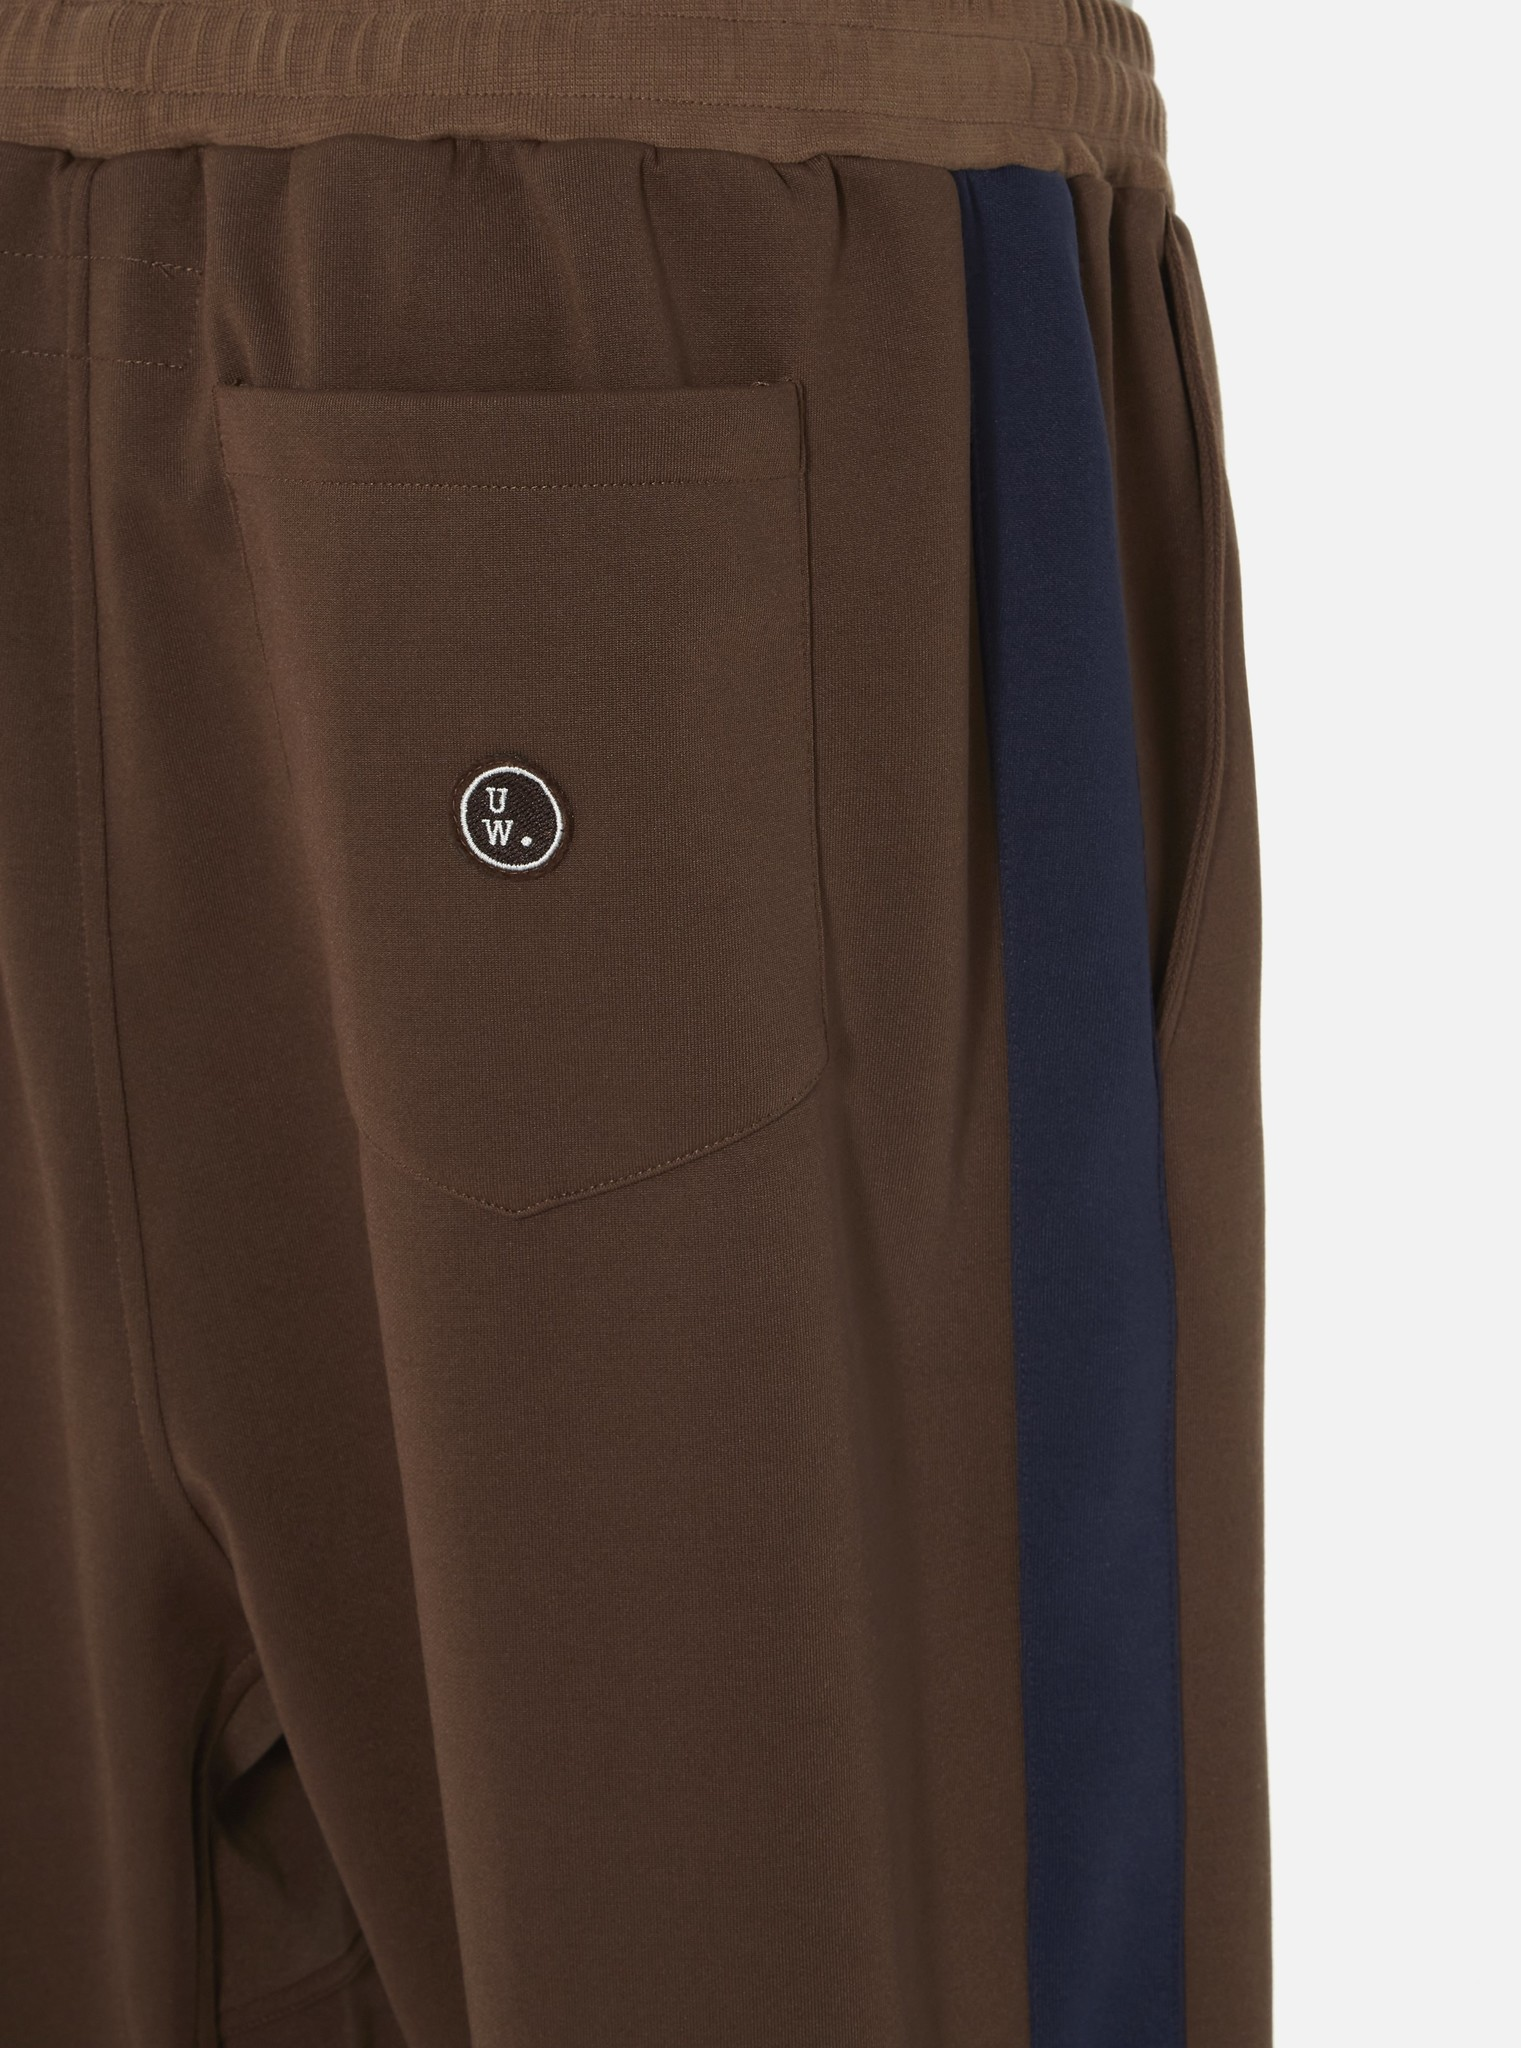 K Track Pant Recycled Tricot Brown-2